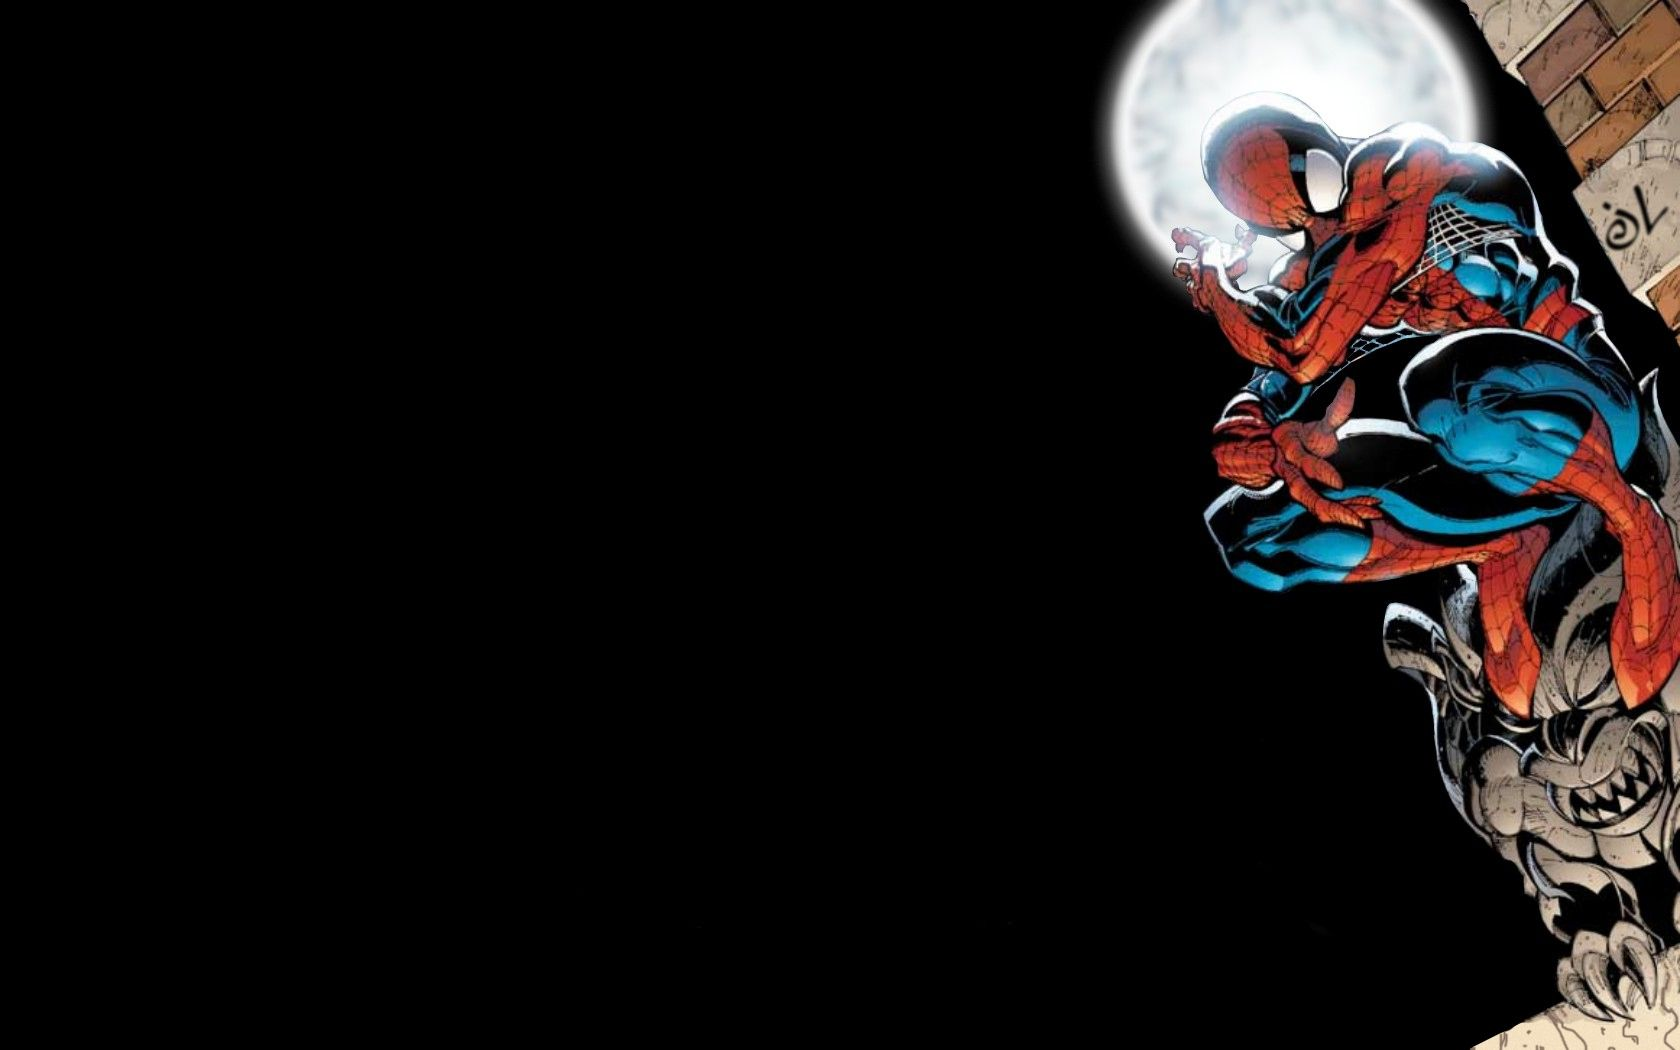 Hd Comic Wallpapers Posted By Zoey Thompson